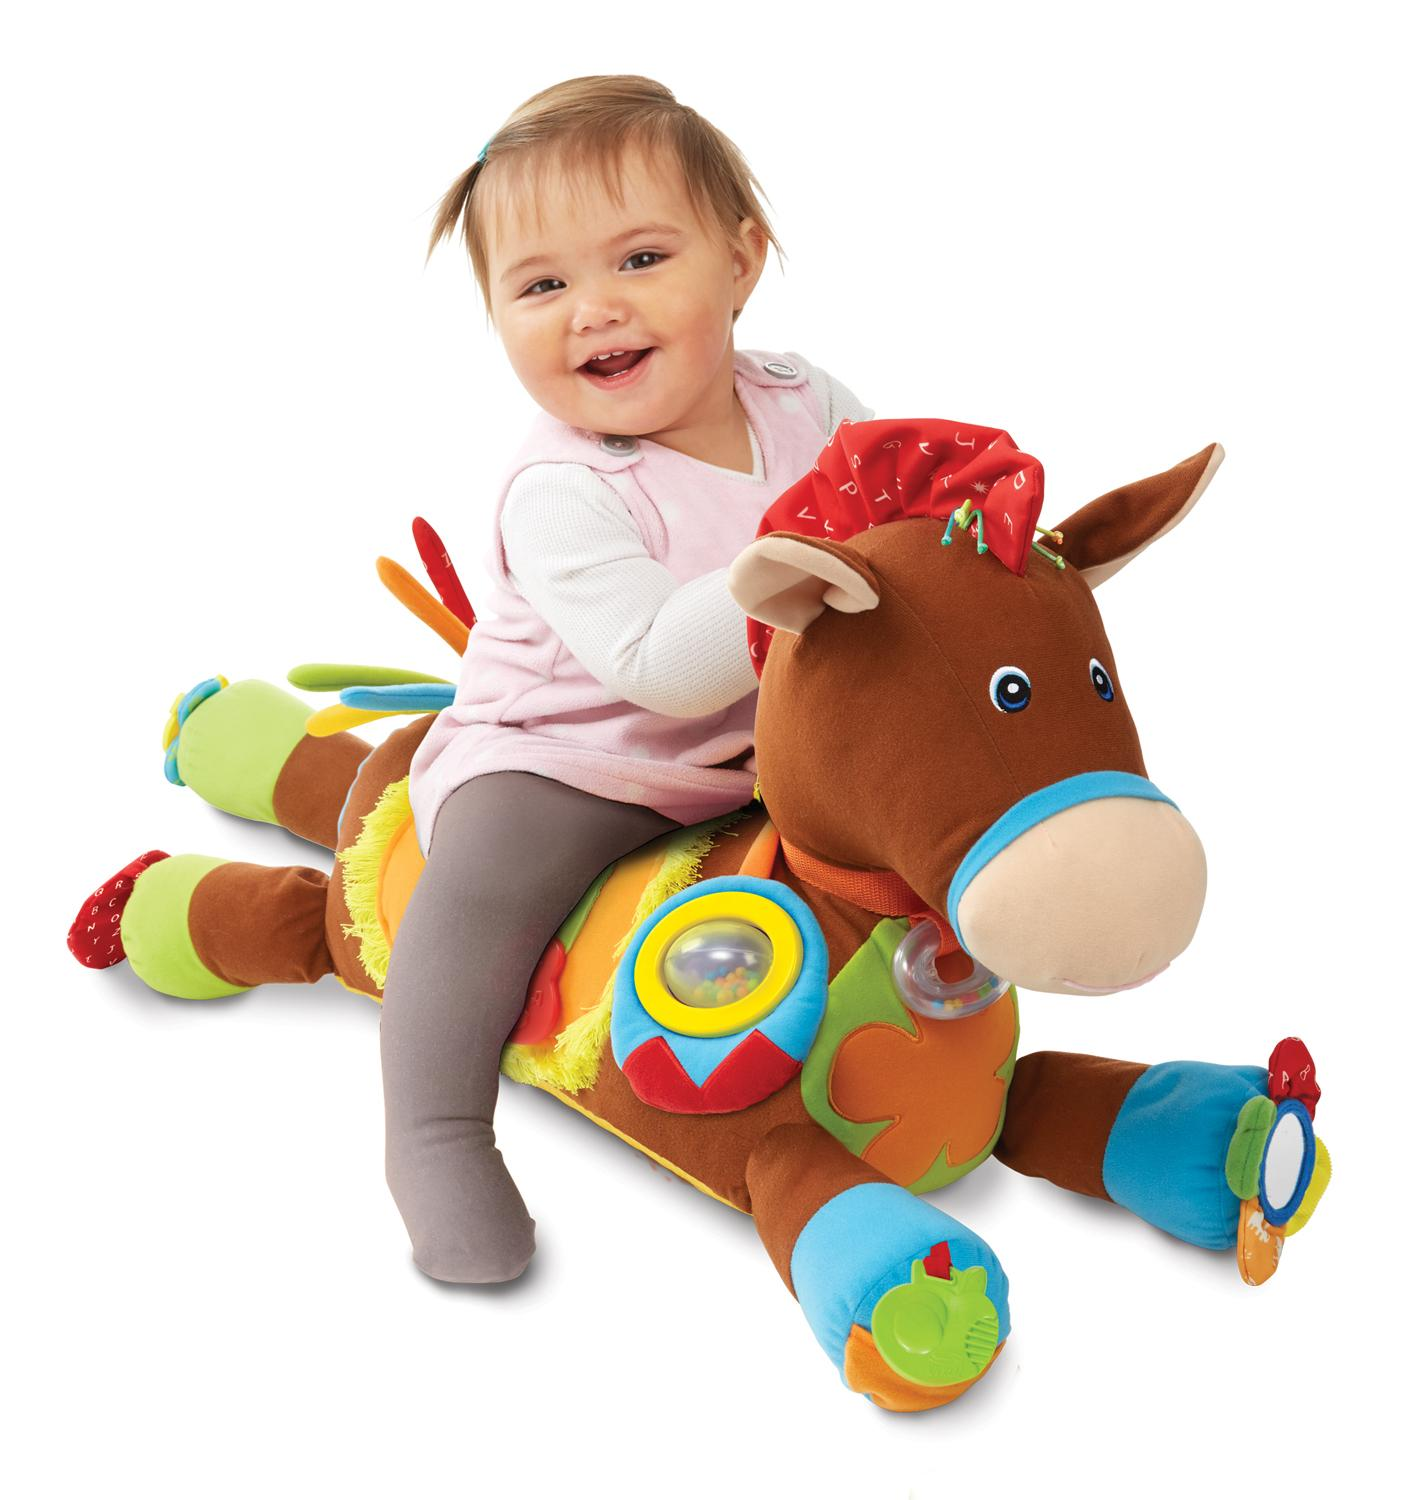 Toys For Stimulating Newborns : Amazon melissa doug giddy up and play baby activity